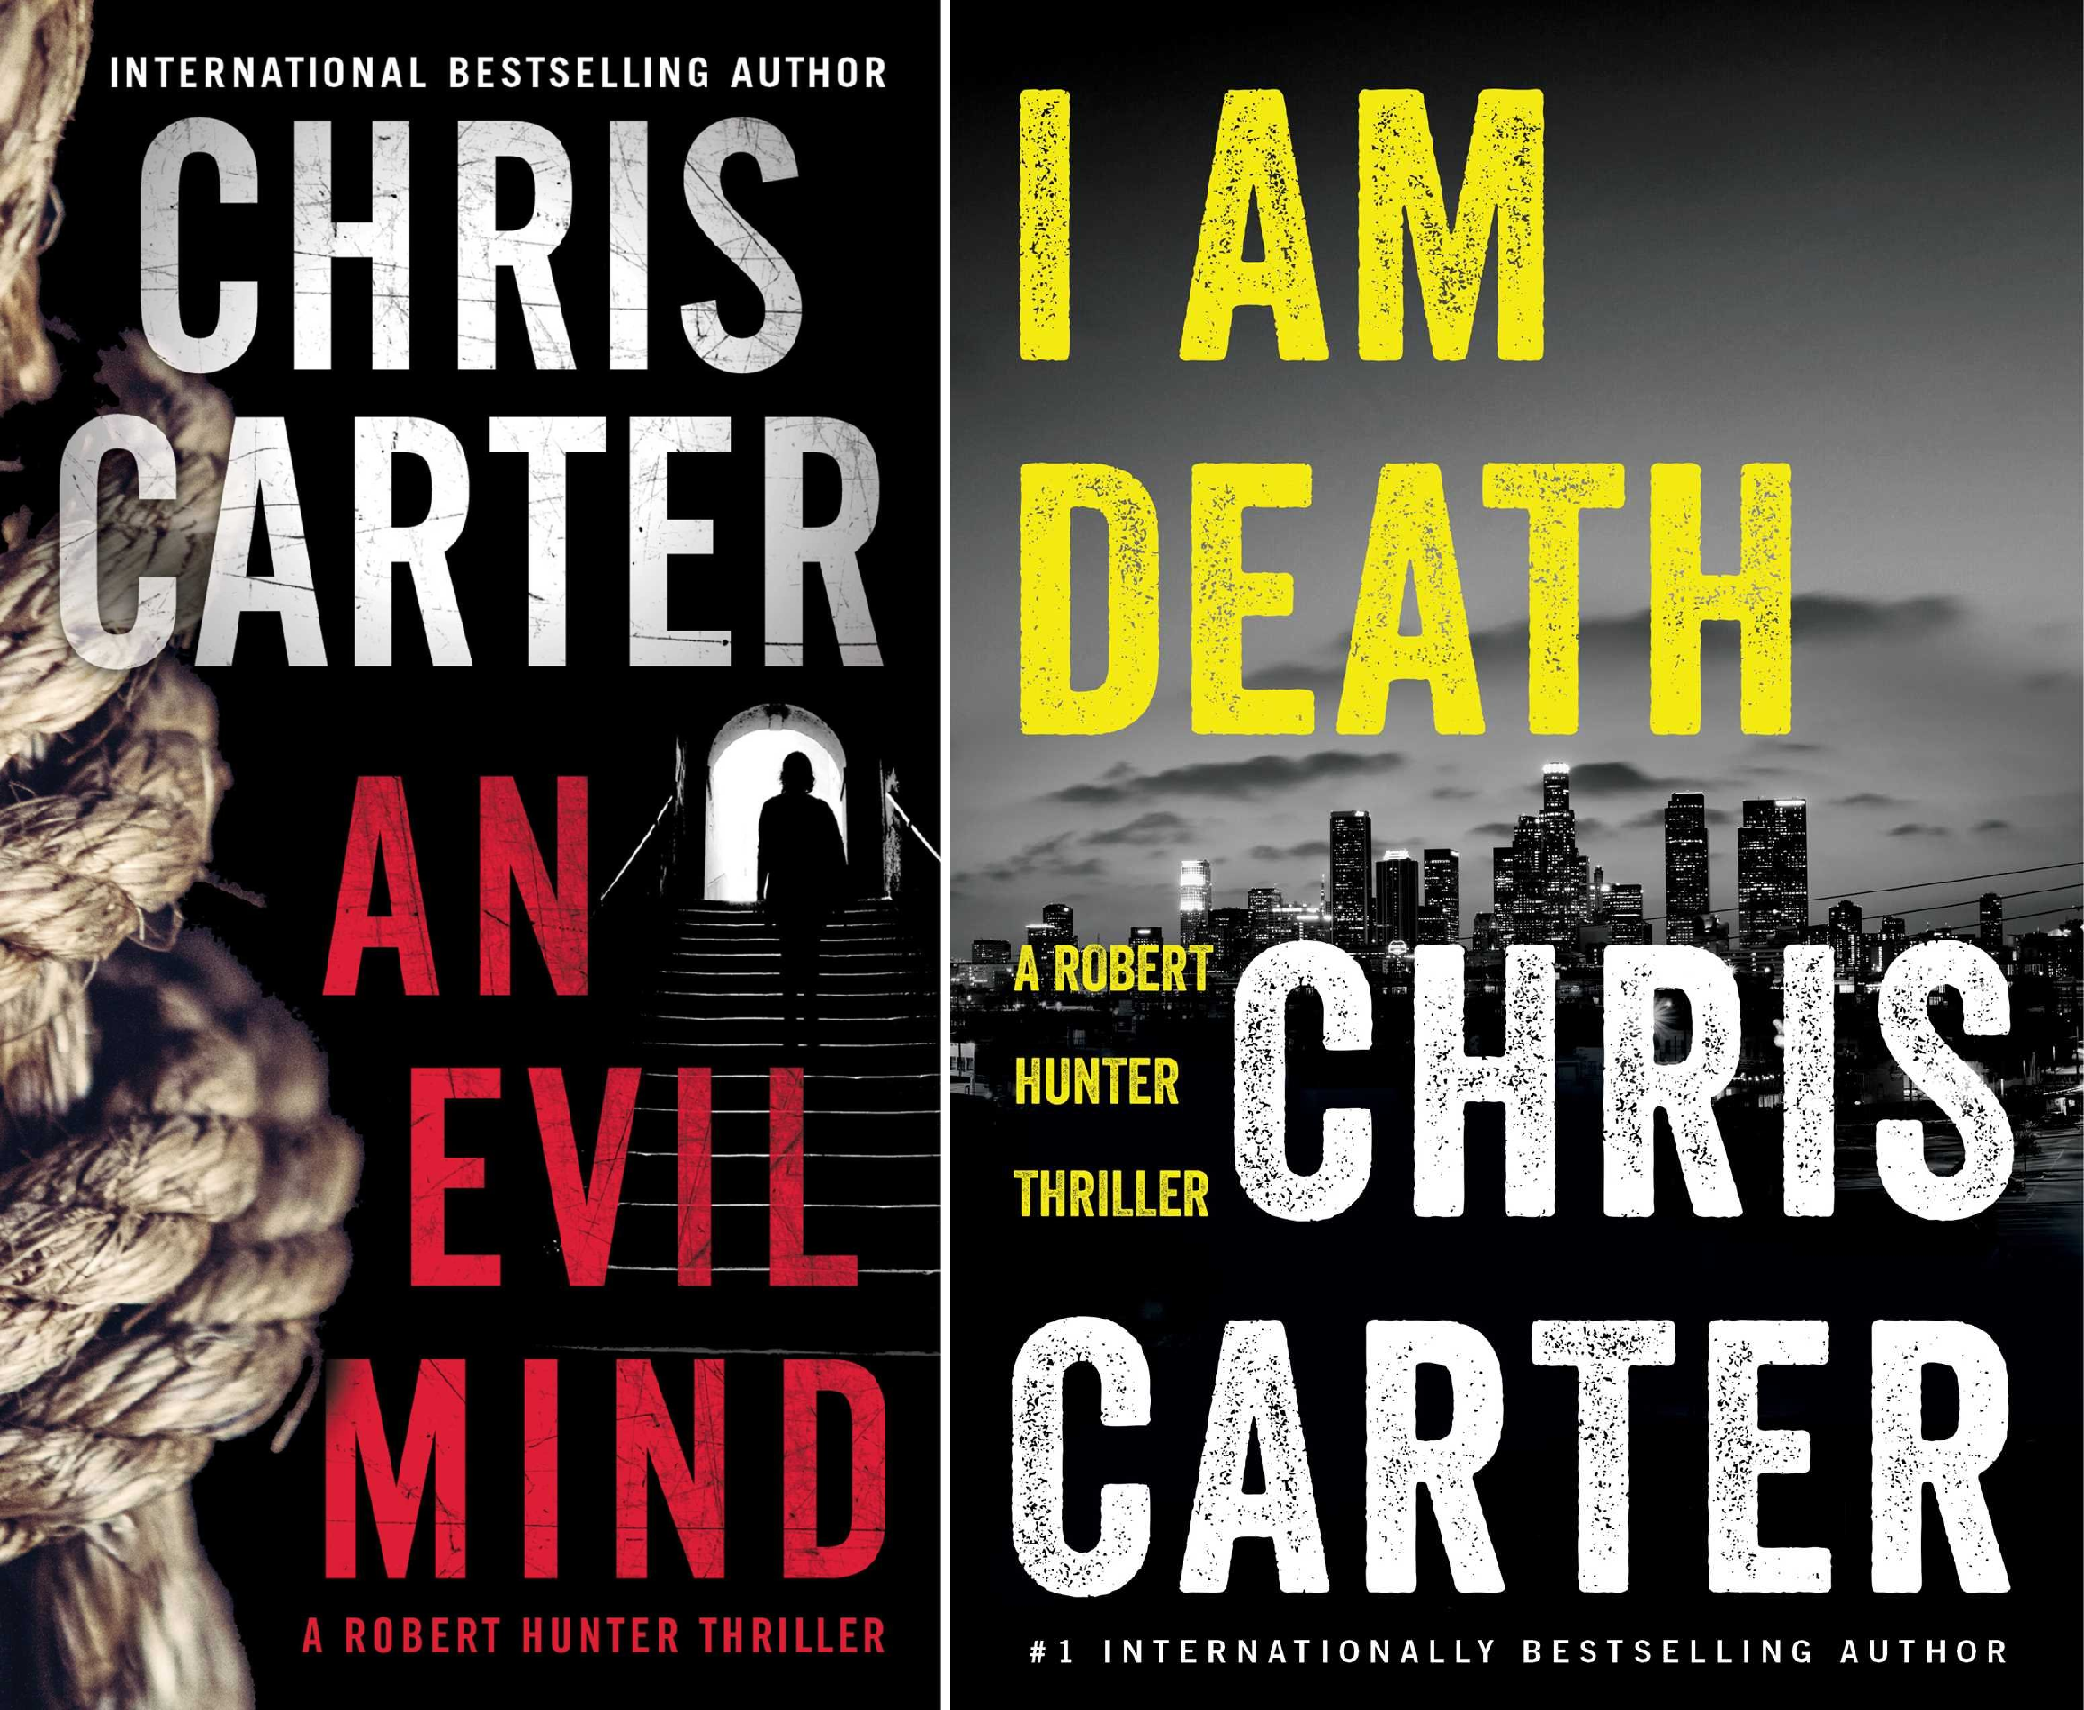 A Robert Hunter Thriller (2 Book Series)